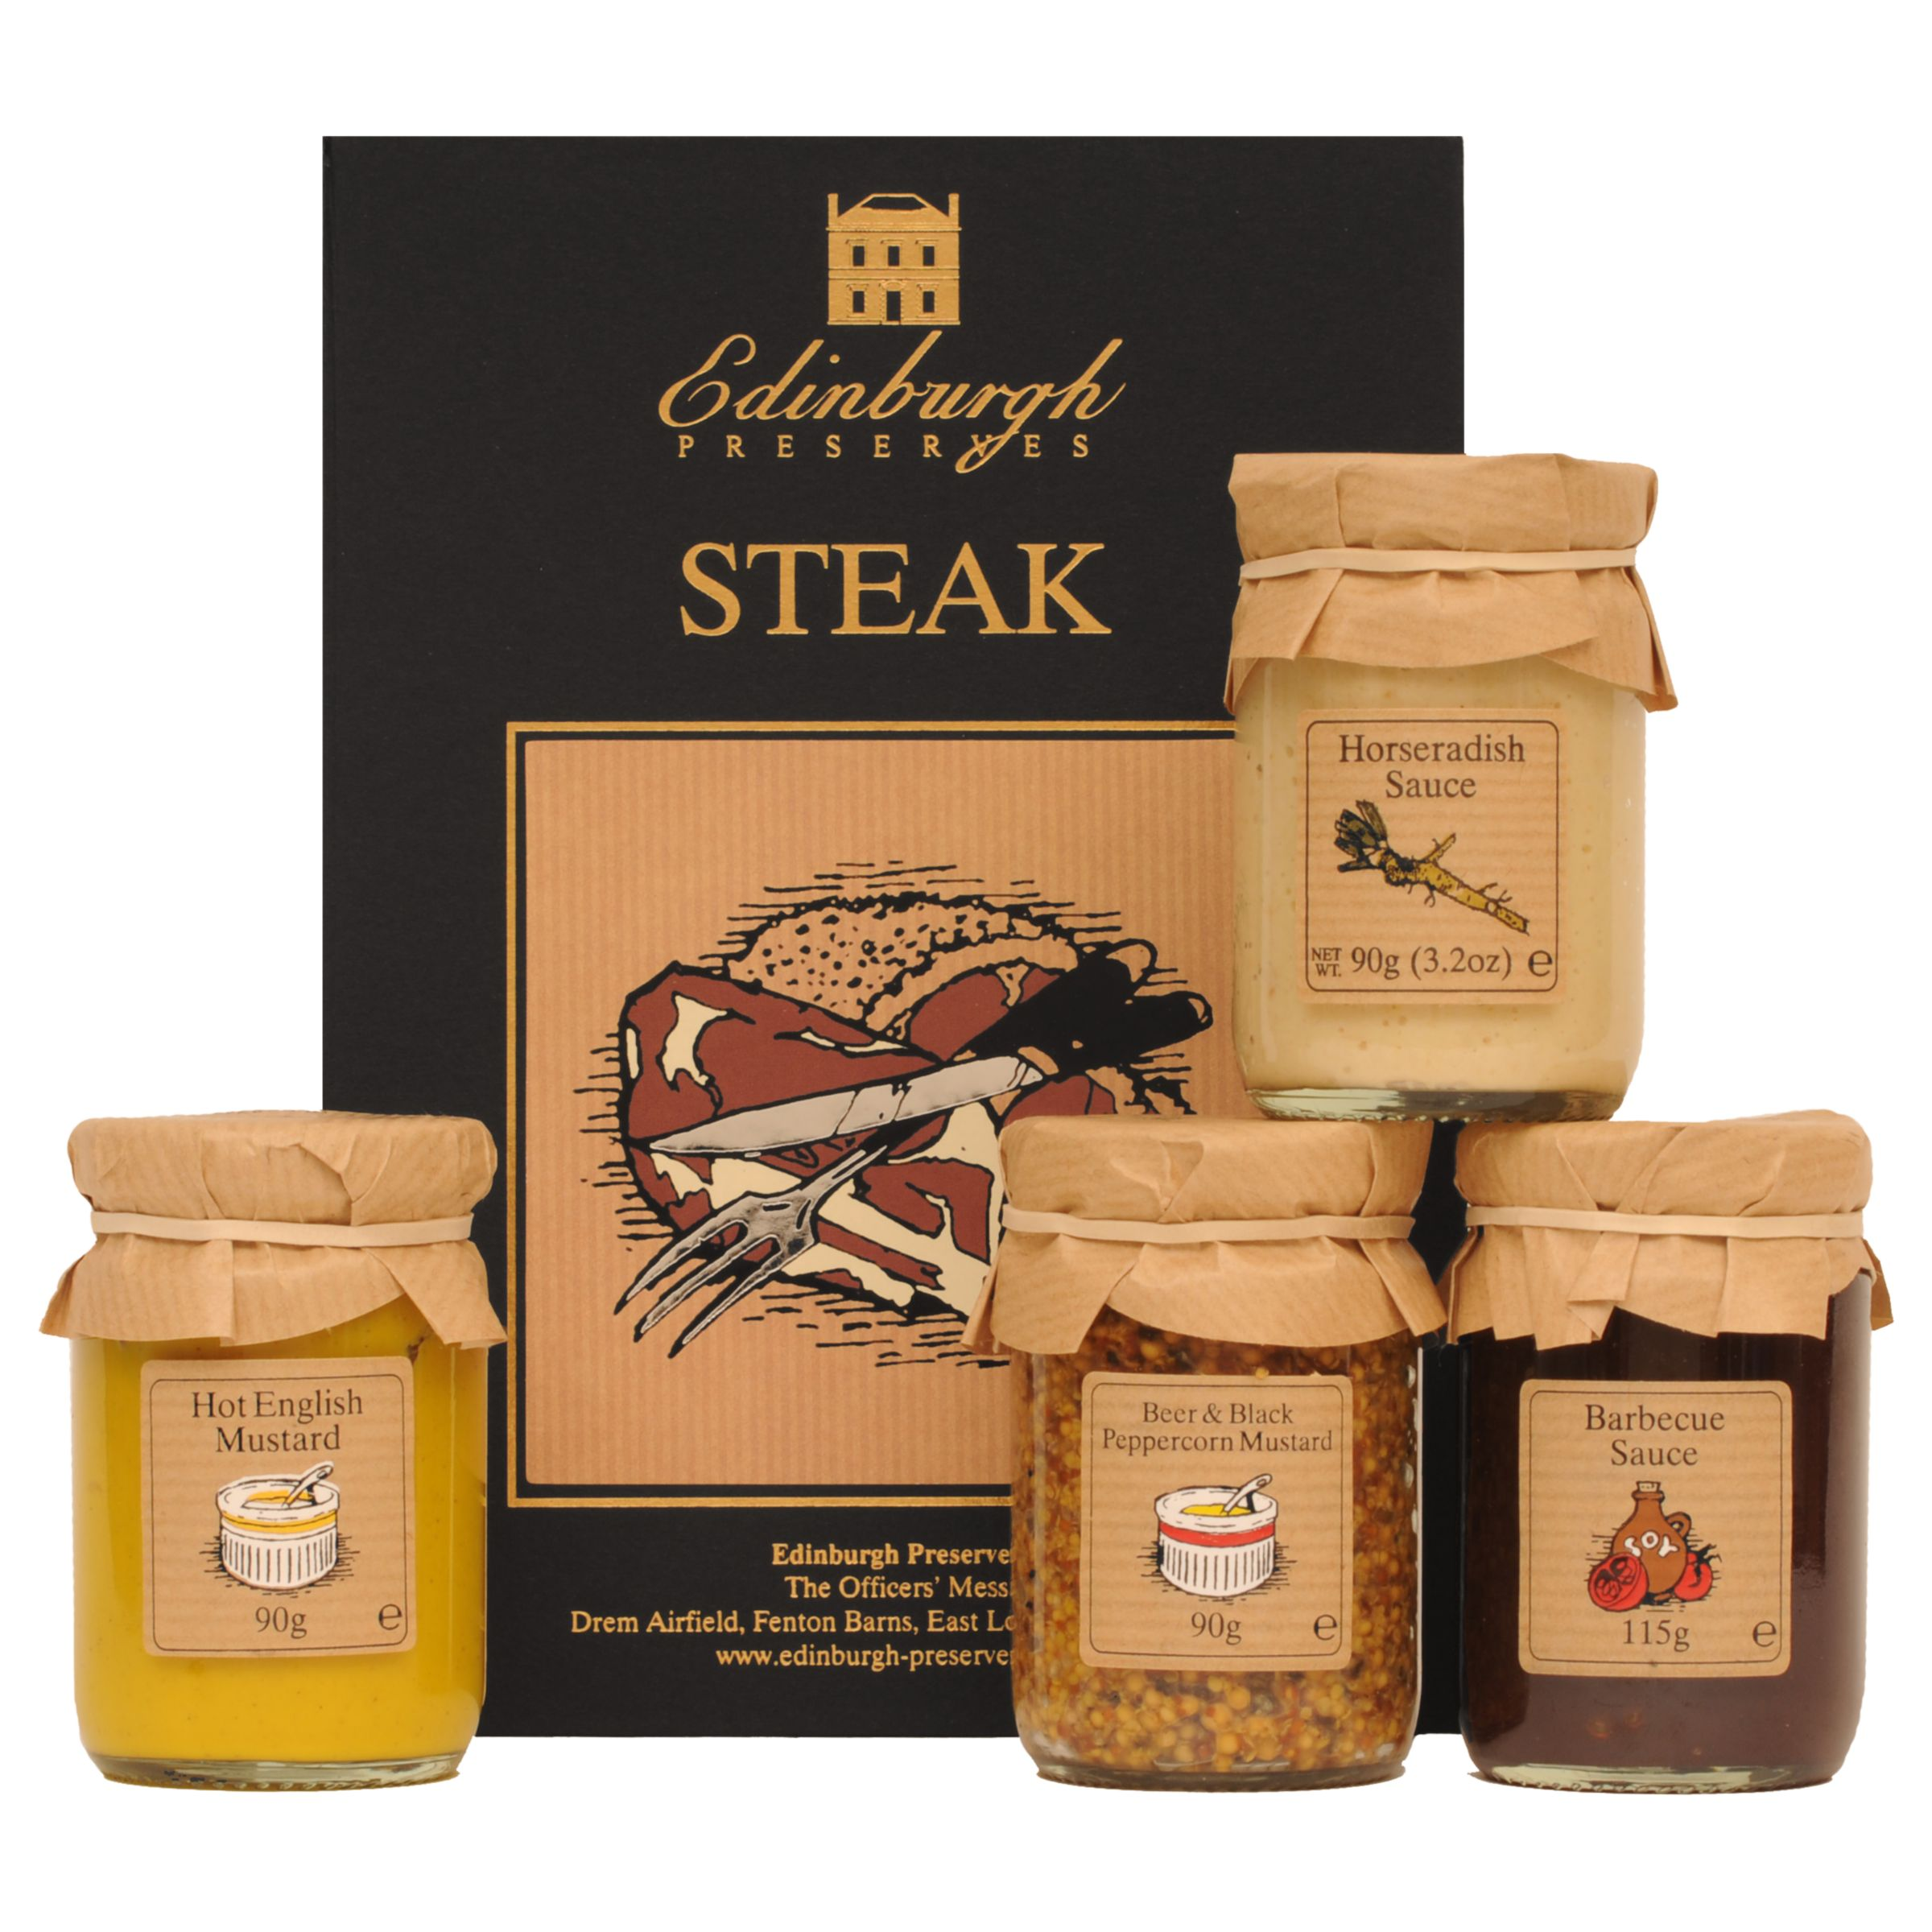 Edinburgh Preserves Steak Sauces Set 385g At John Lewis Partners